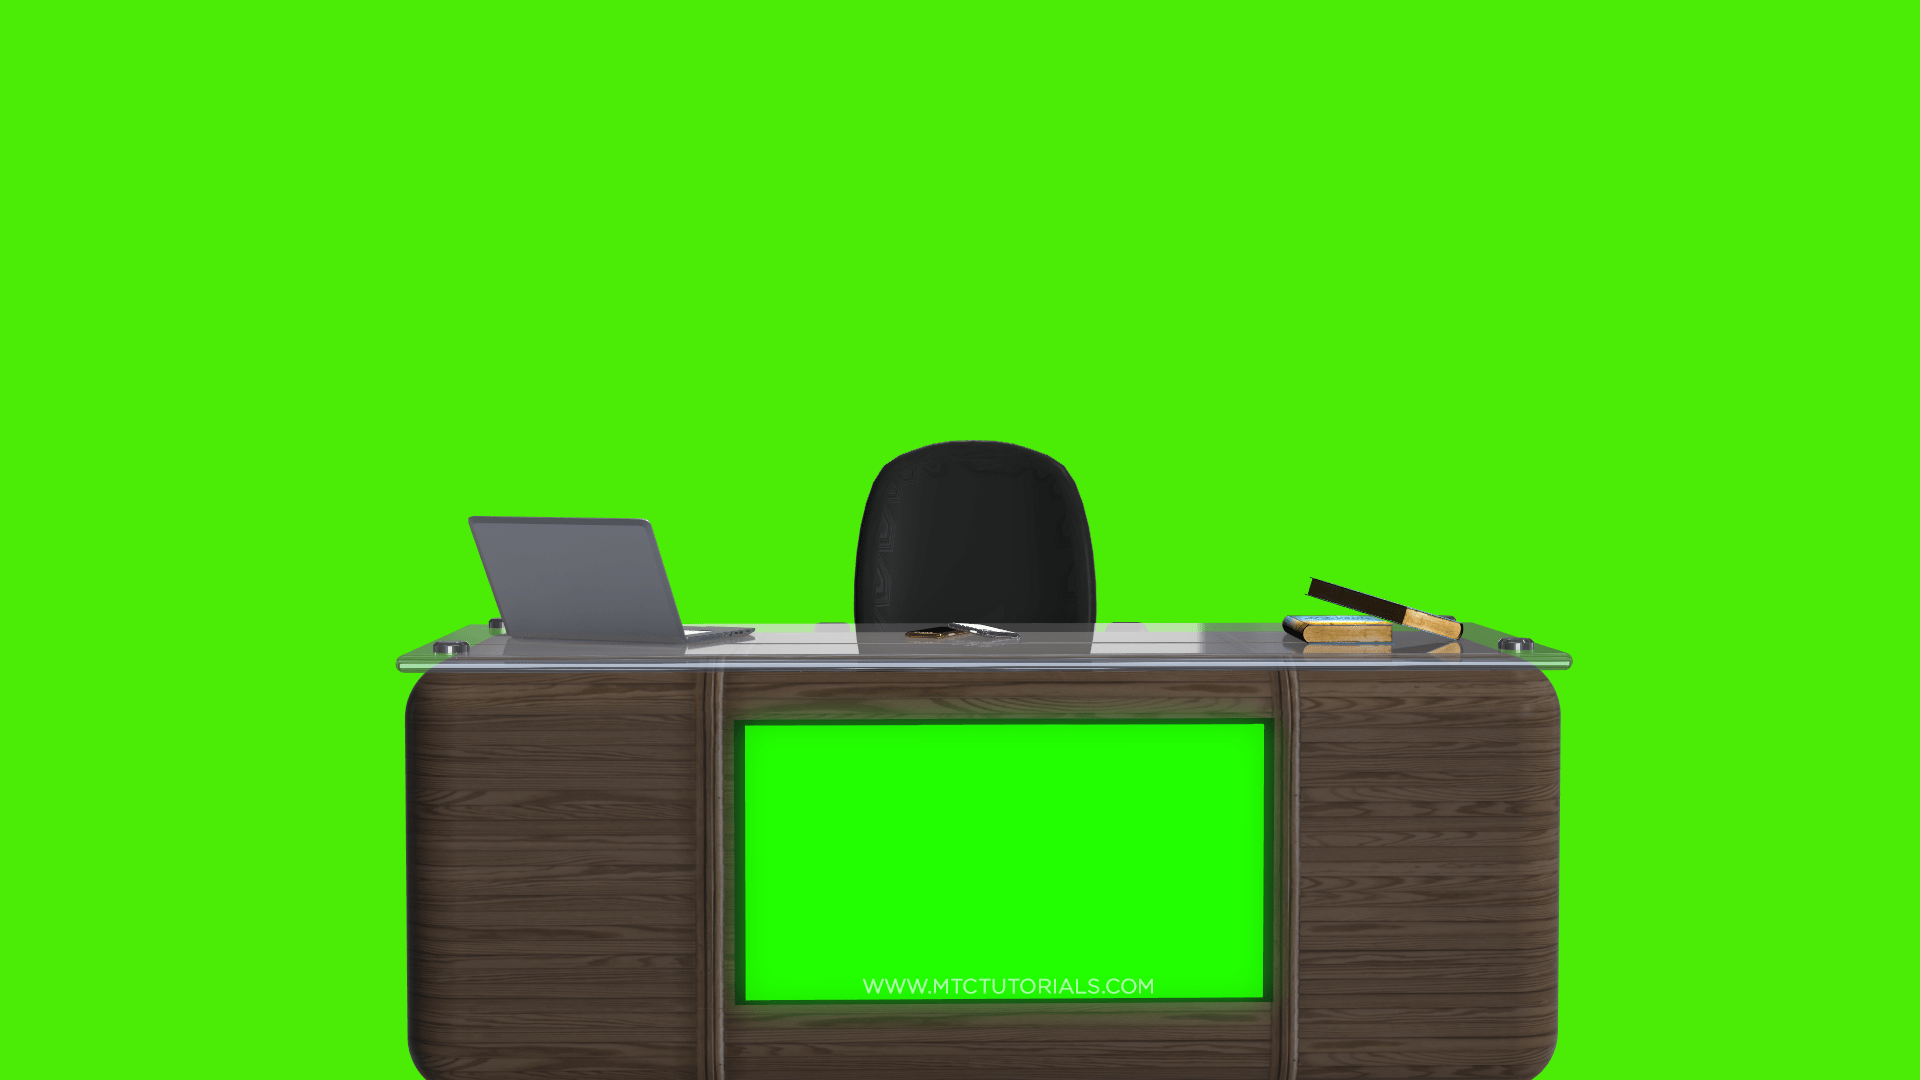 Studio Desk Free Backgrounds Table And Chair Mtc Tutorials